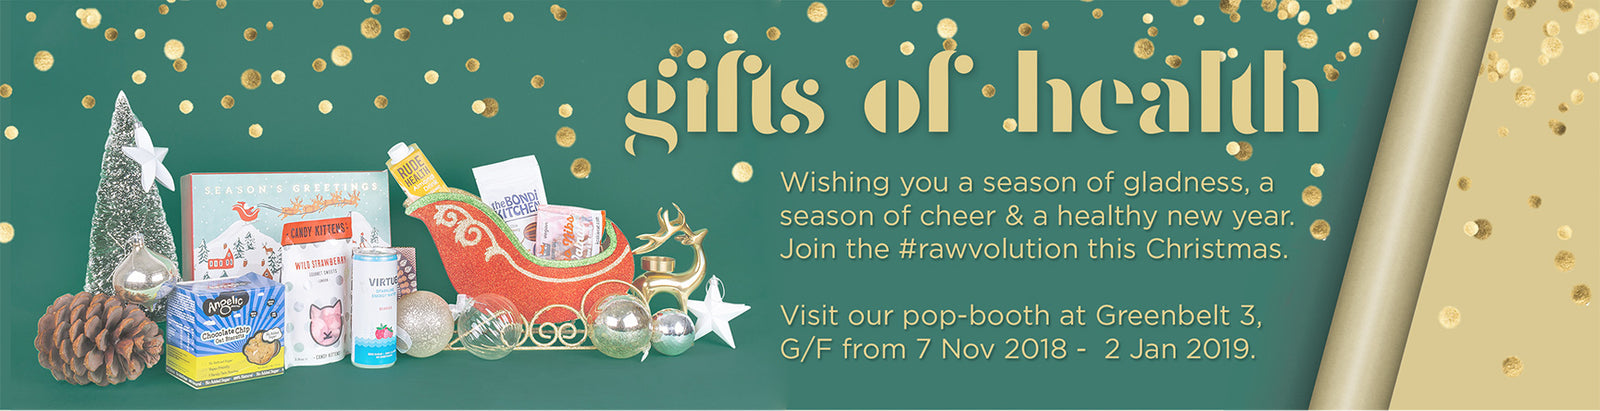 Raw Bites 2018 Christmas Gifts of Health